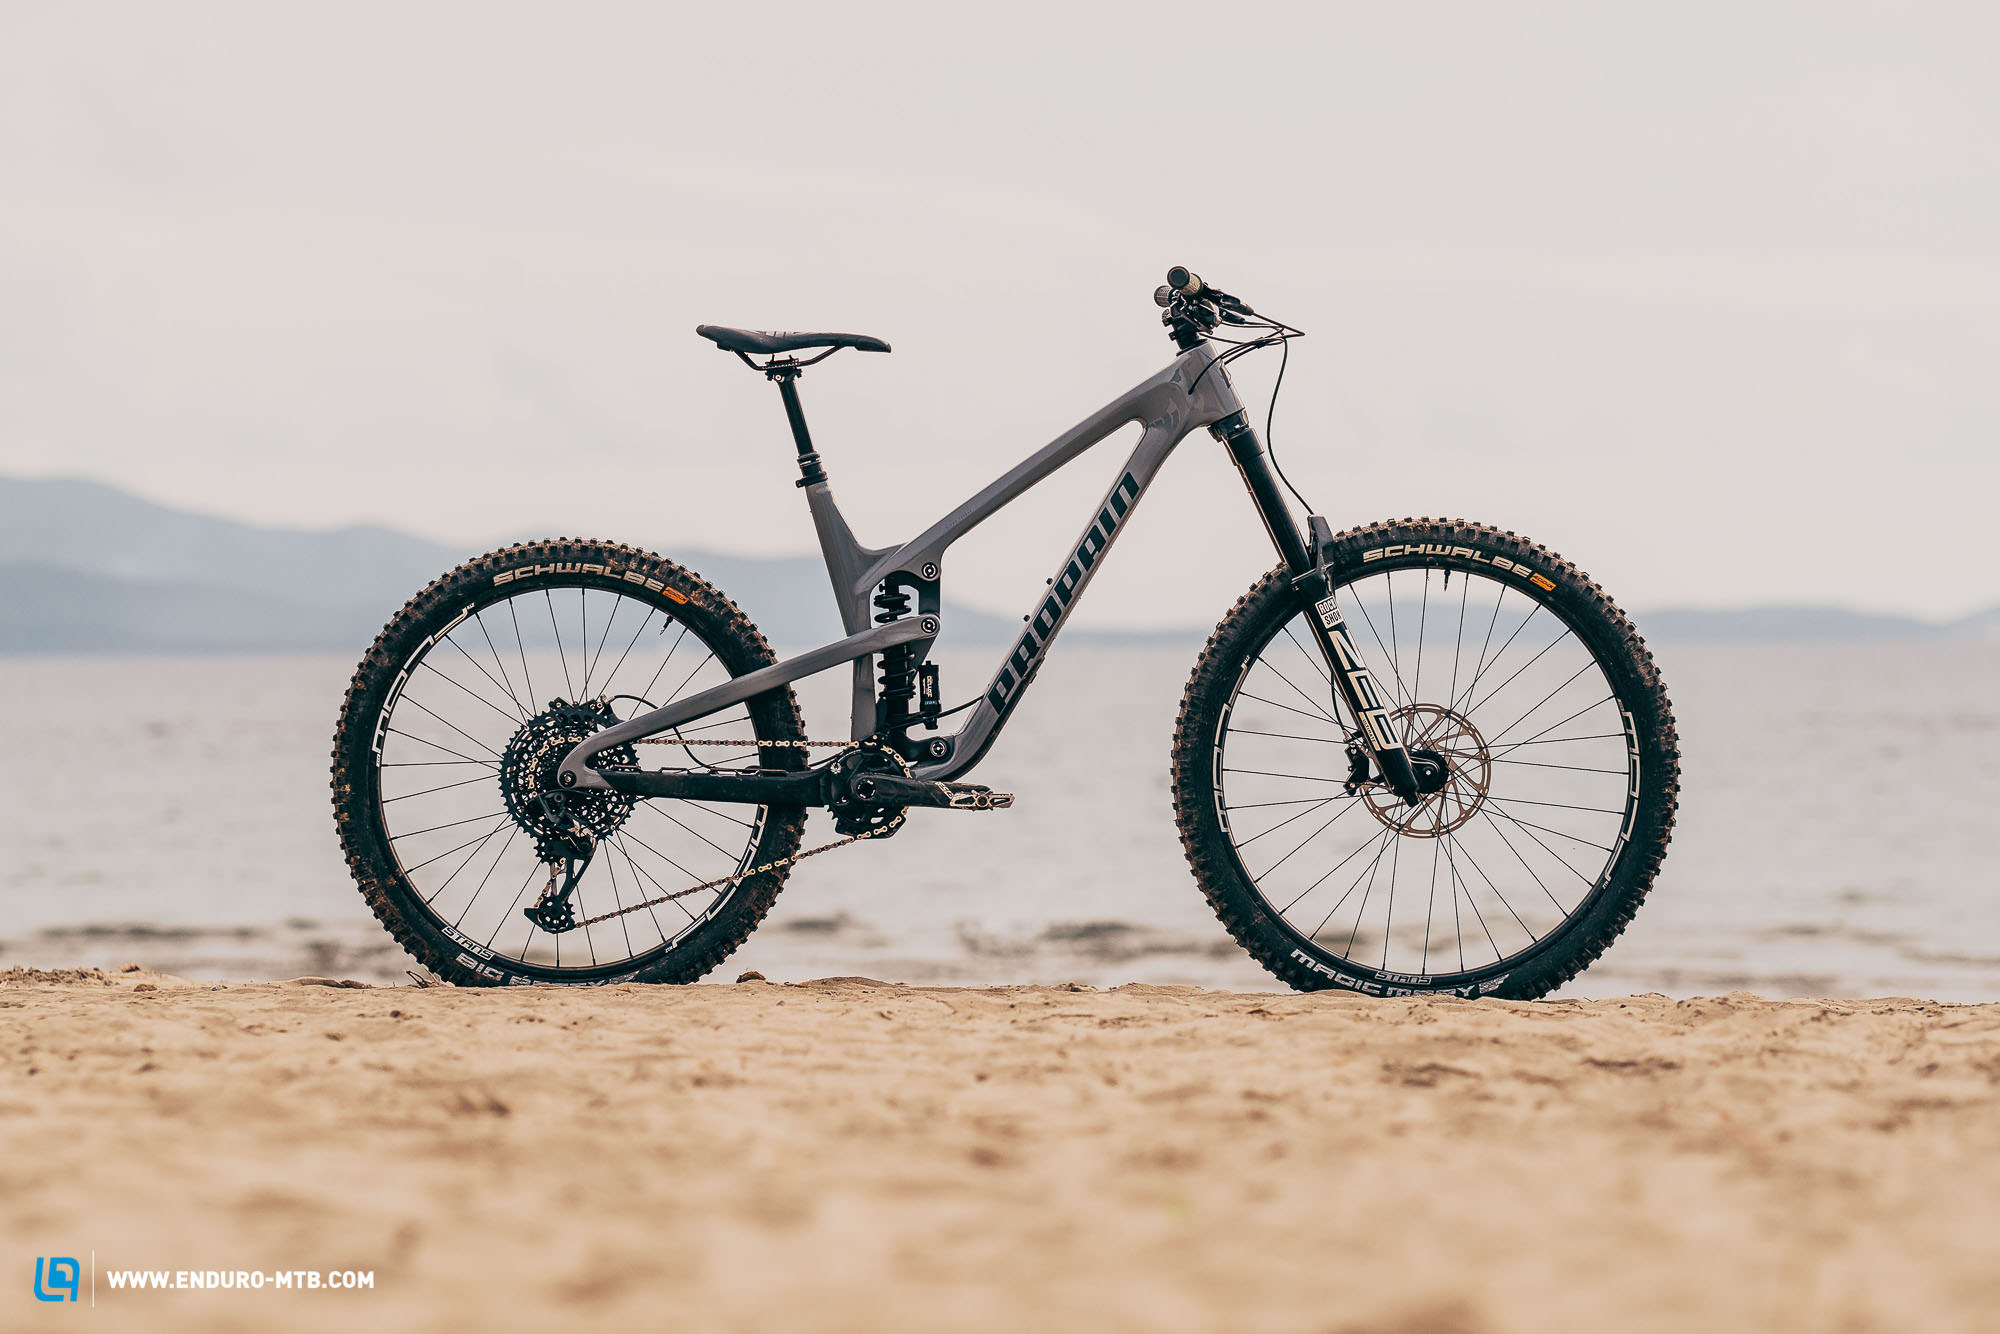 The 2021 Propain Spindrift CF Mix review – To mullet or not to mullet? | ENDURO Mountainbike Magazine